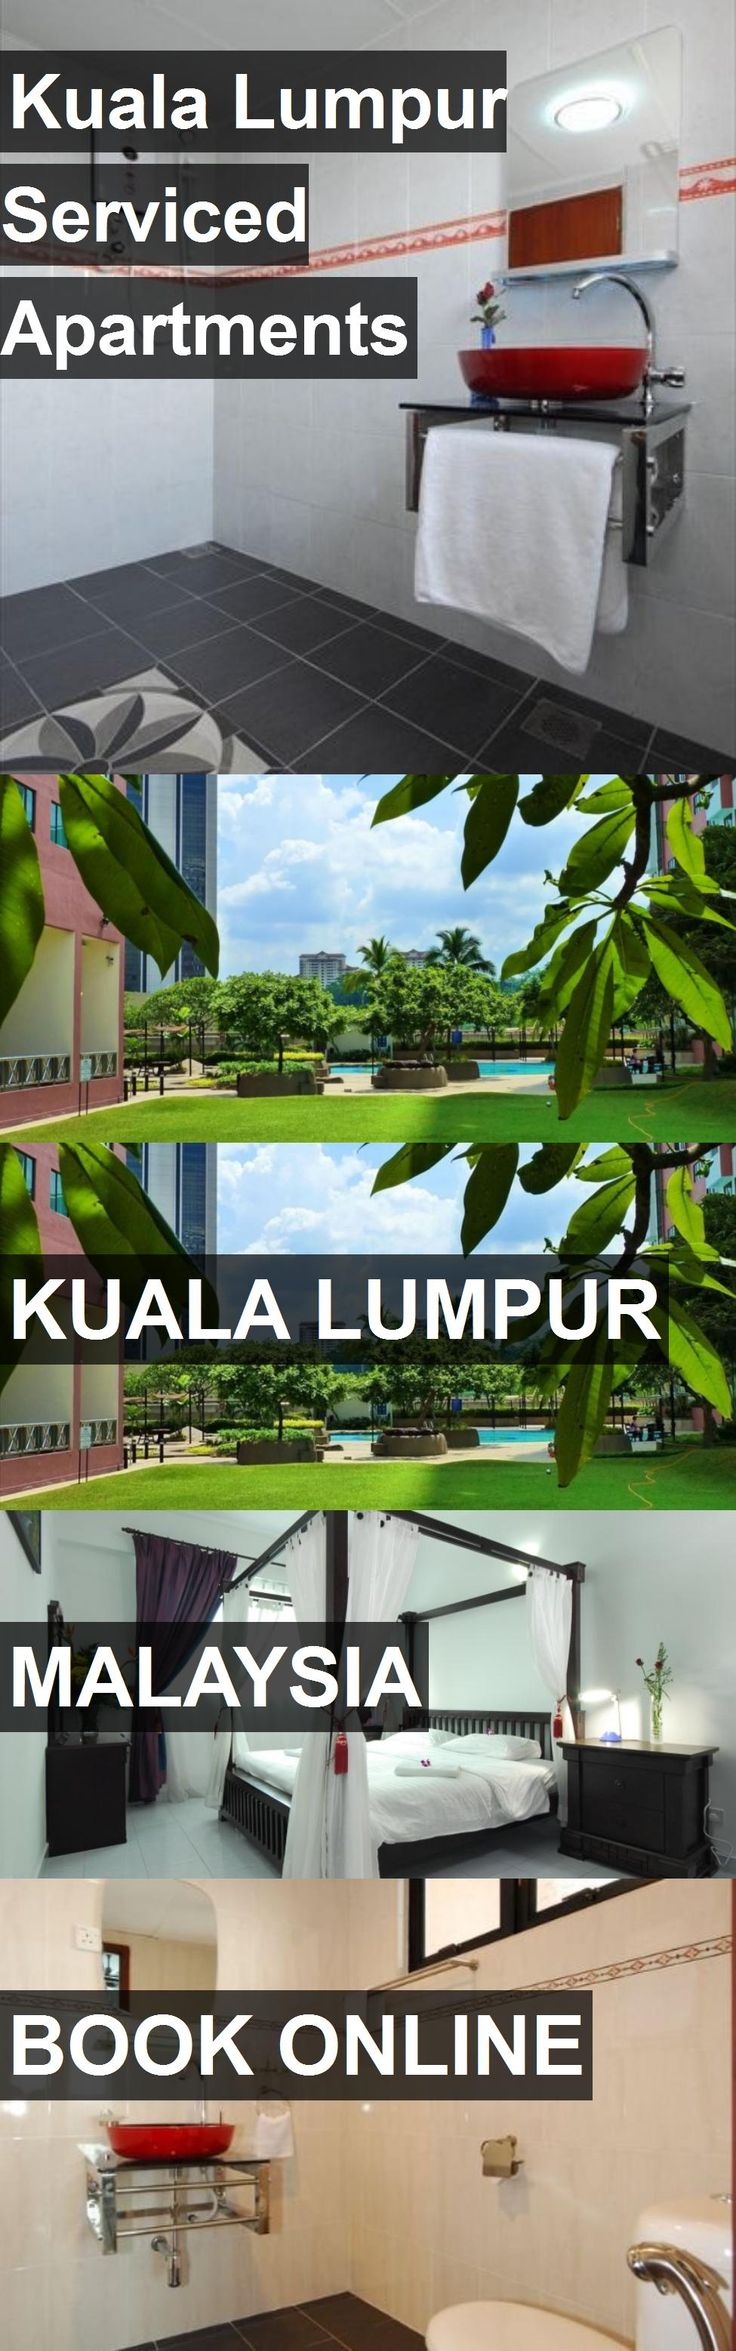 Kuala Lumpur Serviced Apartments in Kuala Lumpur, Malaysia. For more information, photos, reviews and best prices please follow the link. #Malaysia #KualaLumpur #travel #vacation #apartment